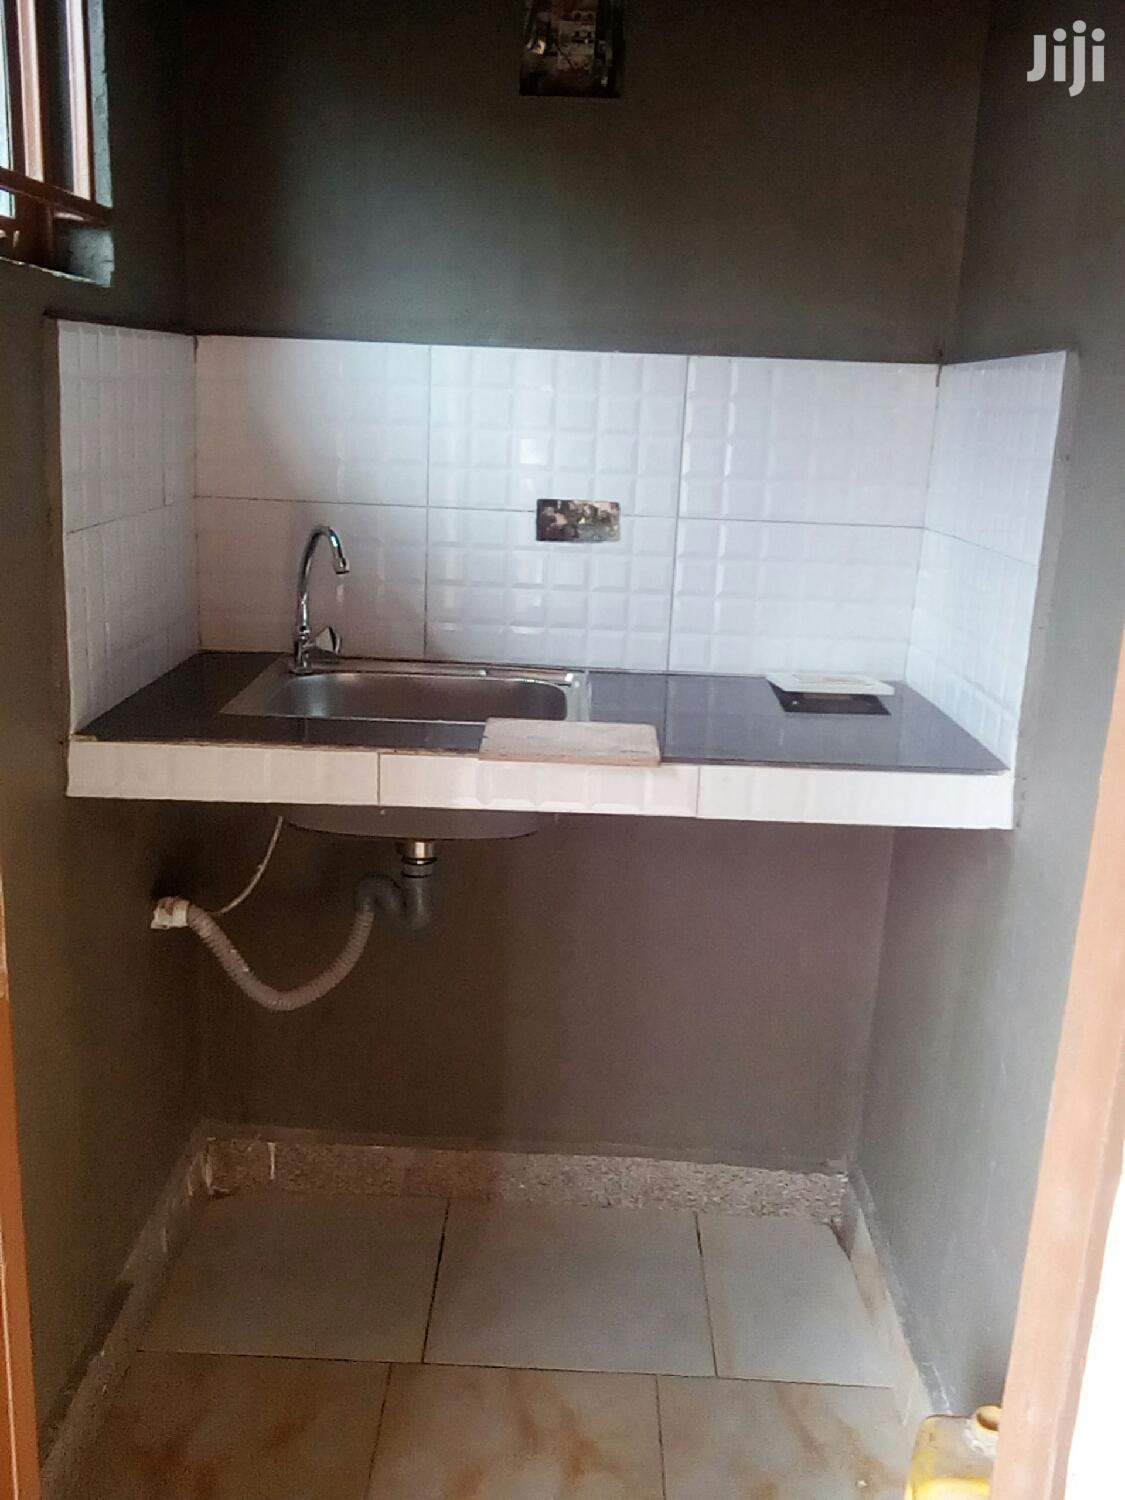 Single Room House For Rent In Bweyogerere   Houses & Apartments For Rent for sale in Kampala, Central Region, Uganda